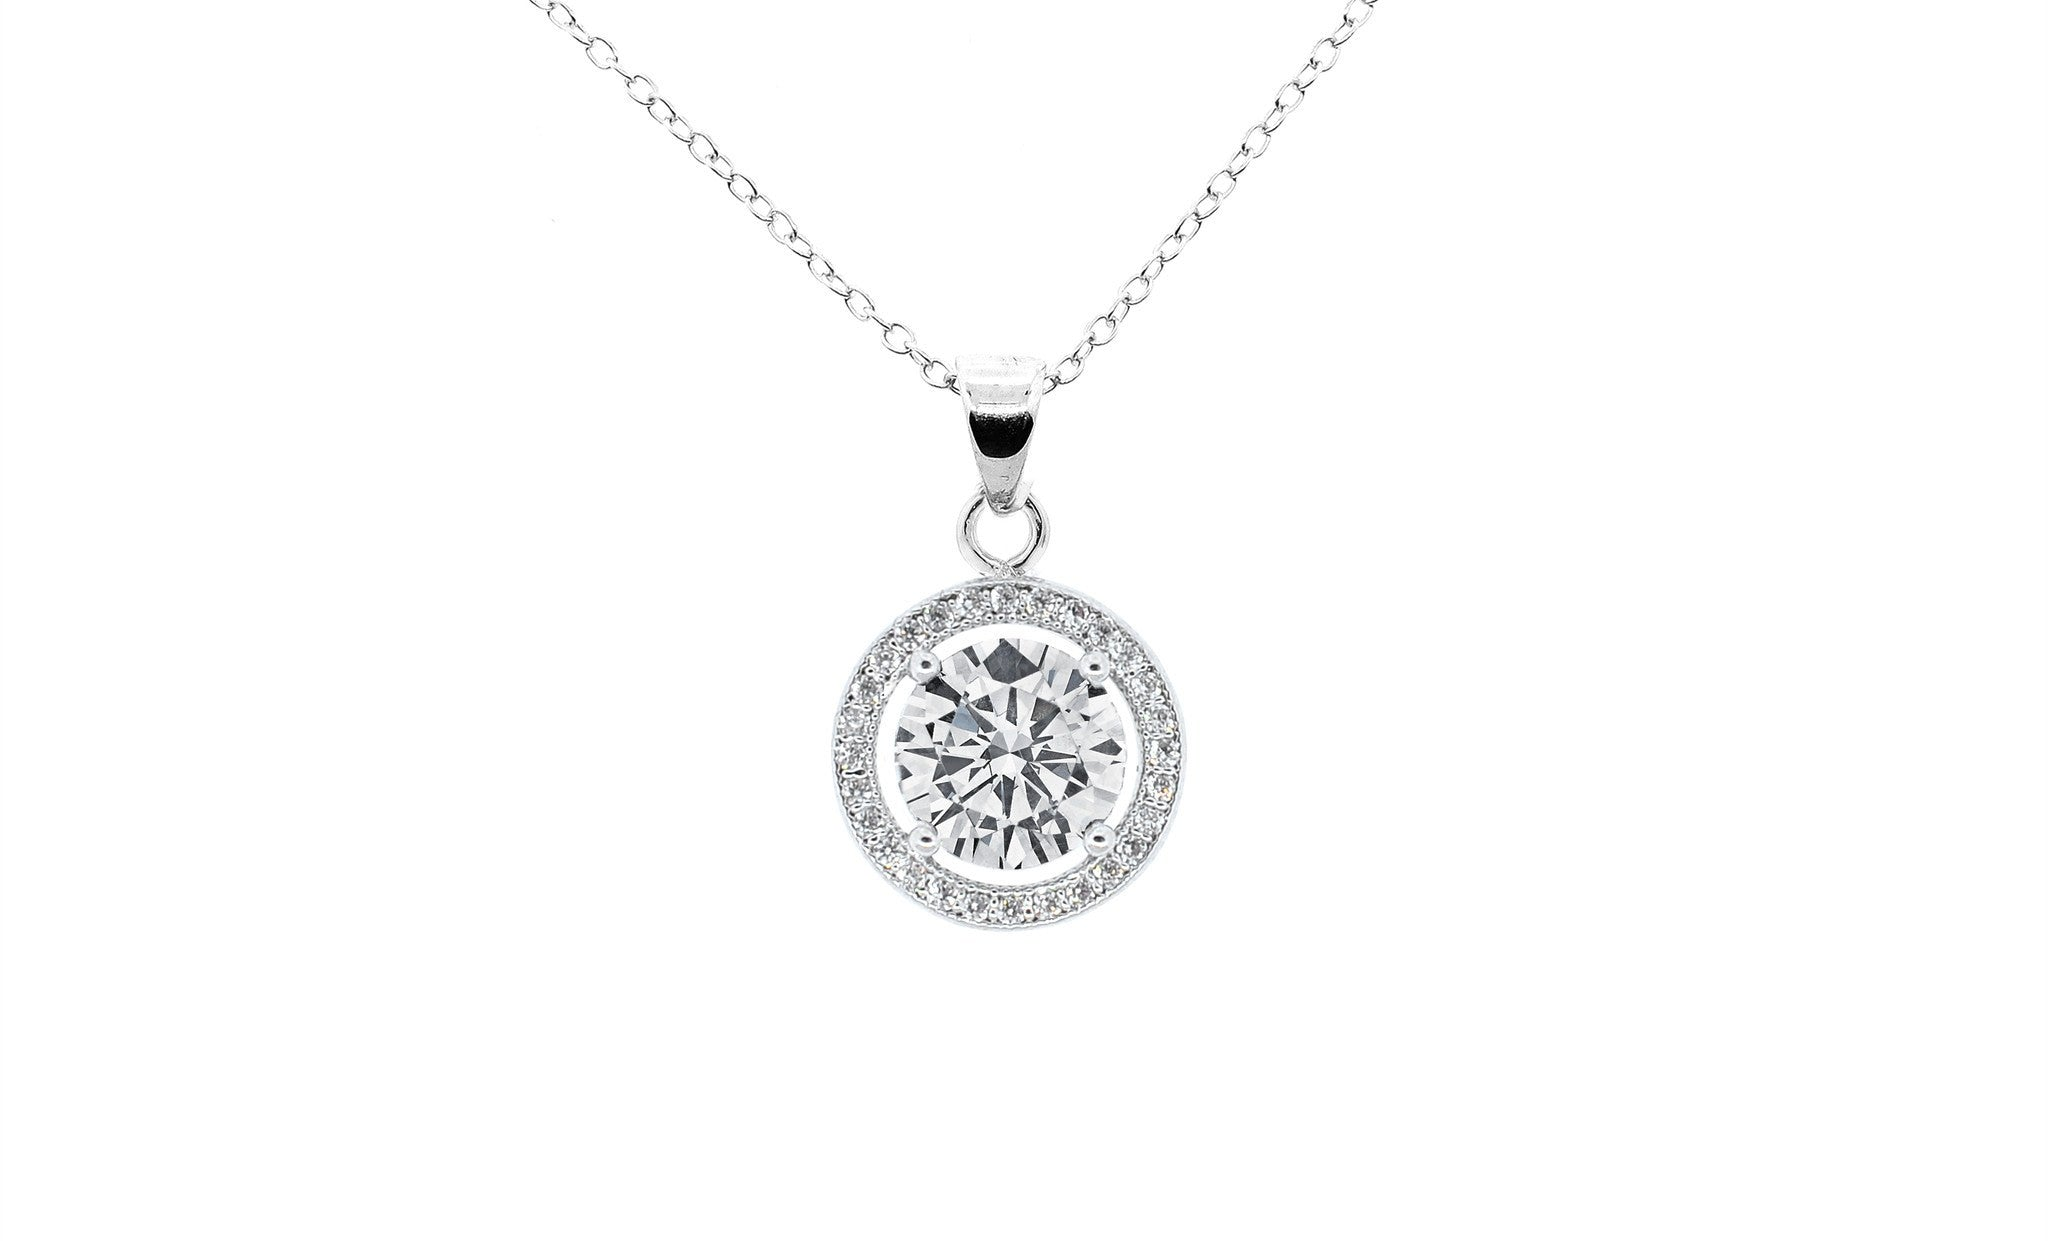 Ariel 18k white gold plated pendant necklace cate chloe jewelry jewelry necklace pendant blake true 18k white gold plated pendant necklace mozeypictures Images